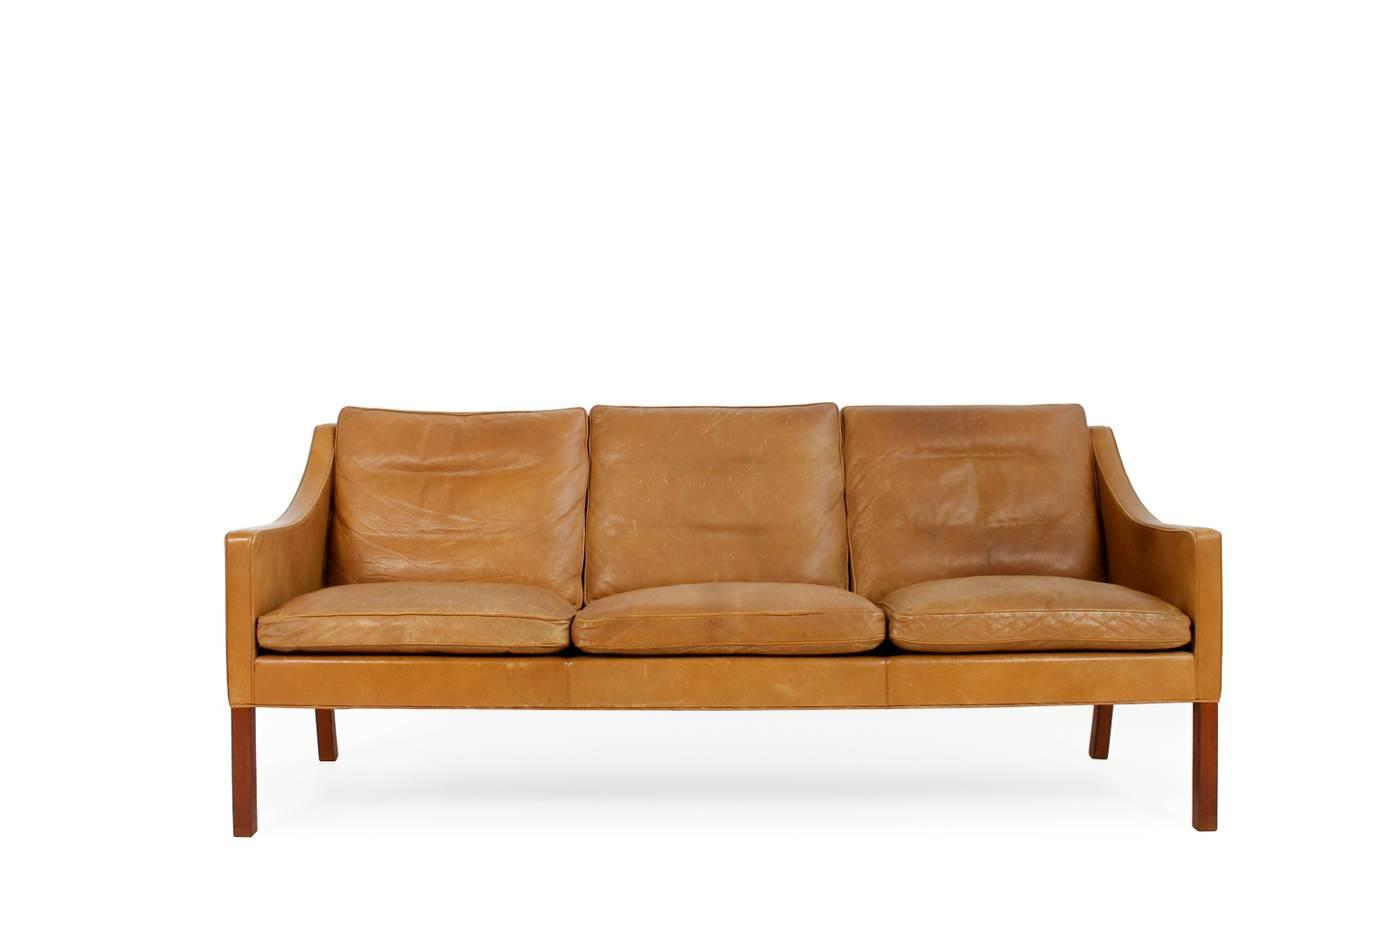 mogensen sofa 2209 modernform %e0%b8%a3%e0%b8%b2%e0%b8%84%e0%b8%b2 borge leather mod by fredericia